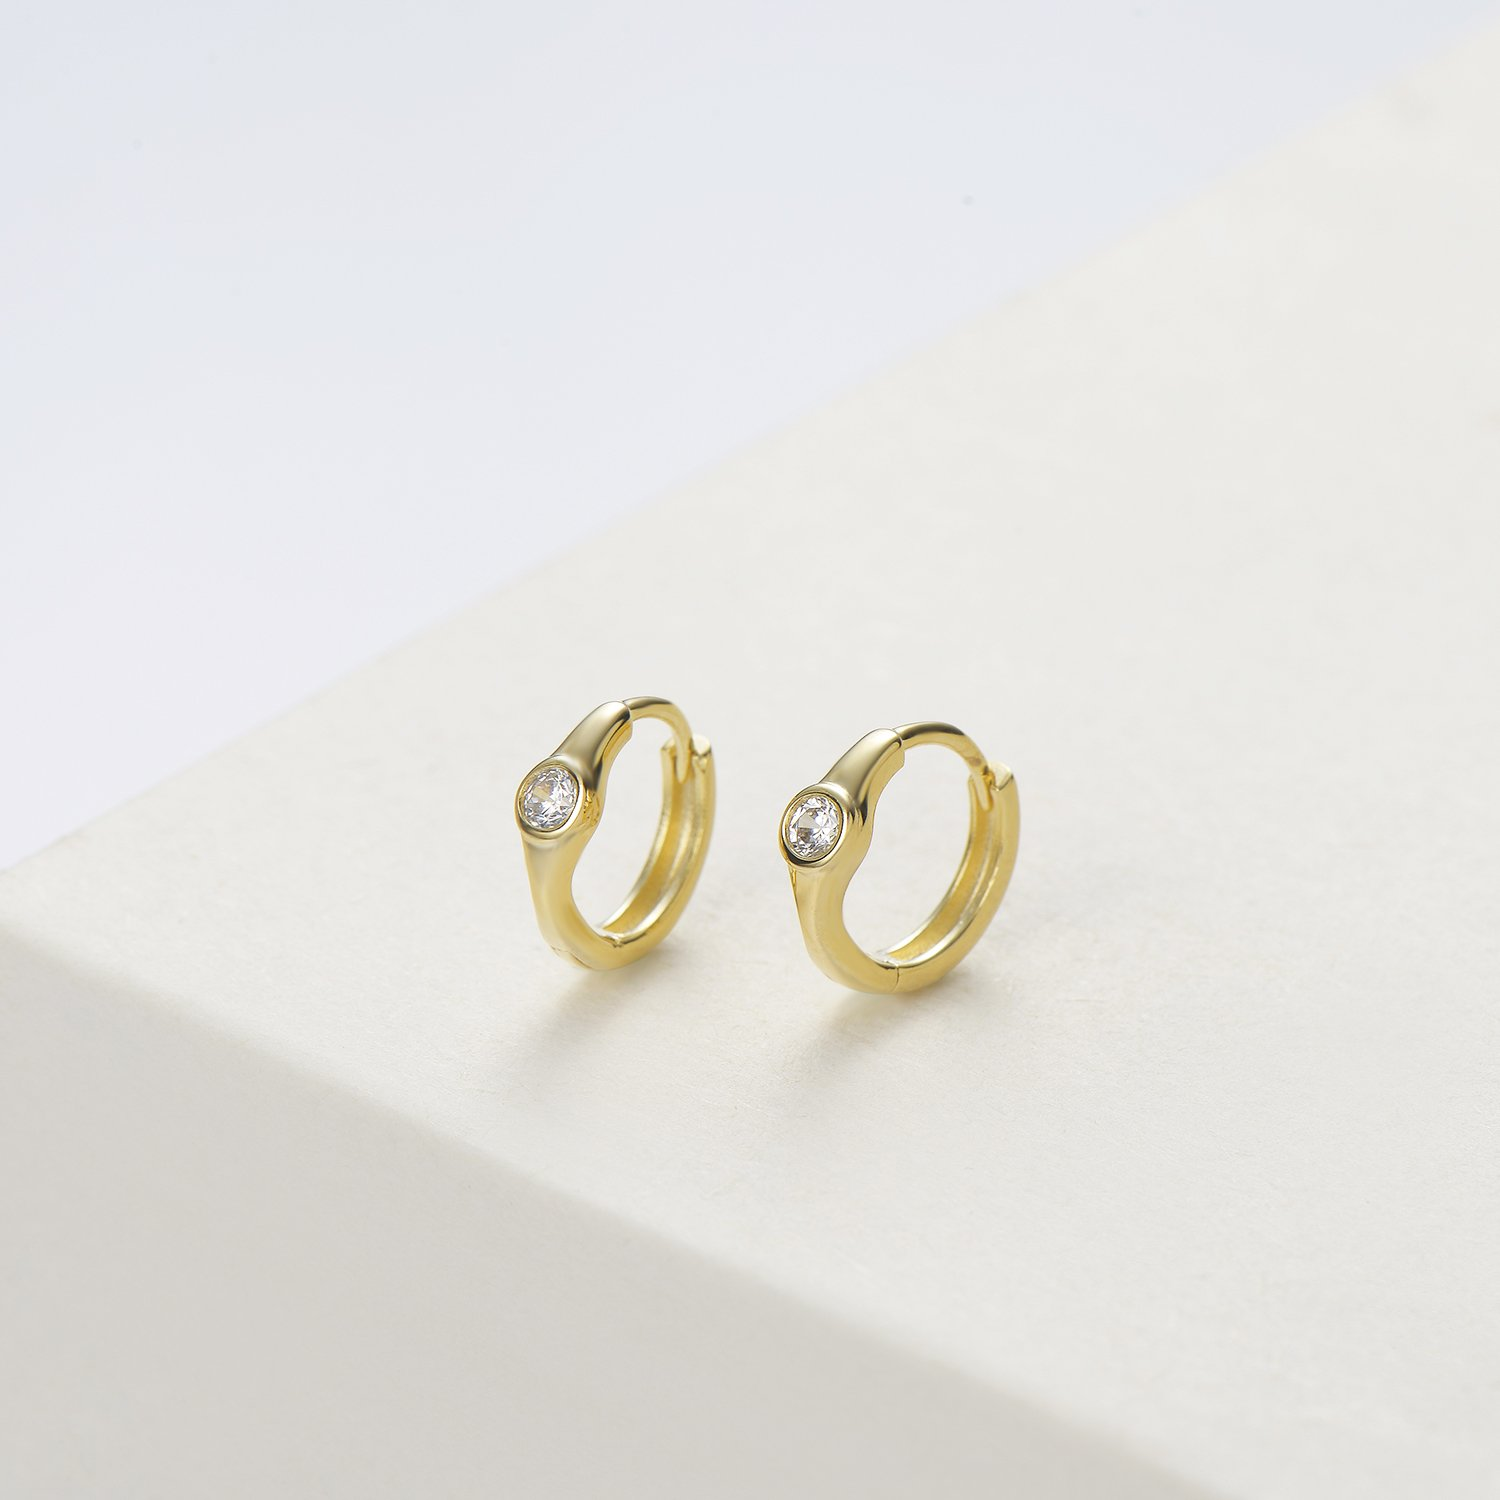 Carleen 14K Yellow Gold Plated 925 Sterling Silver Round Cut Cubic Zirconia CZ Dainty Hinged Hoop Earrings for Women Girls, 11x10mm by Carleen (Image #2)